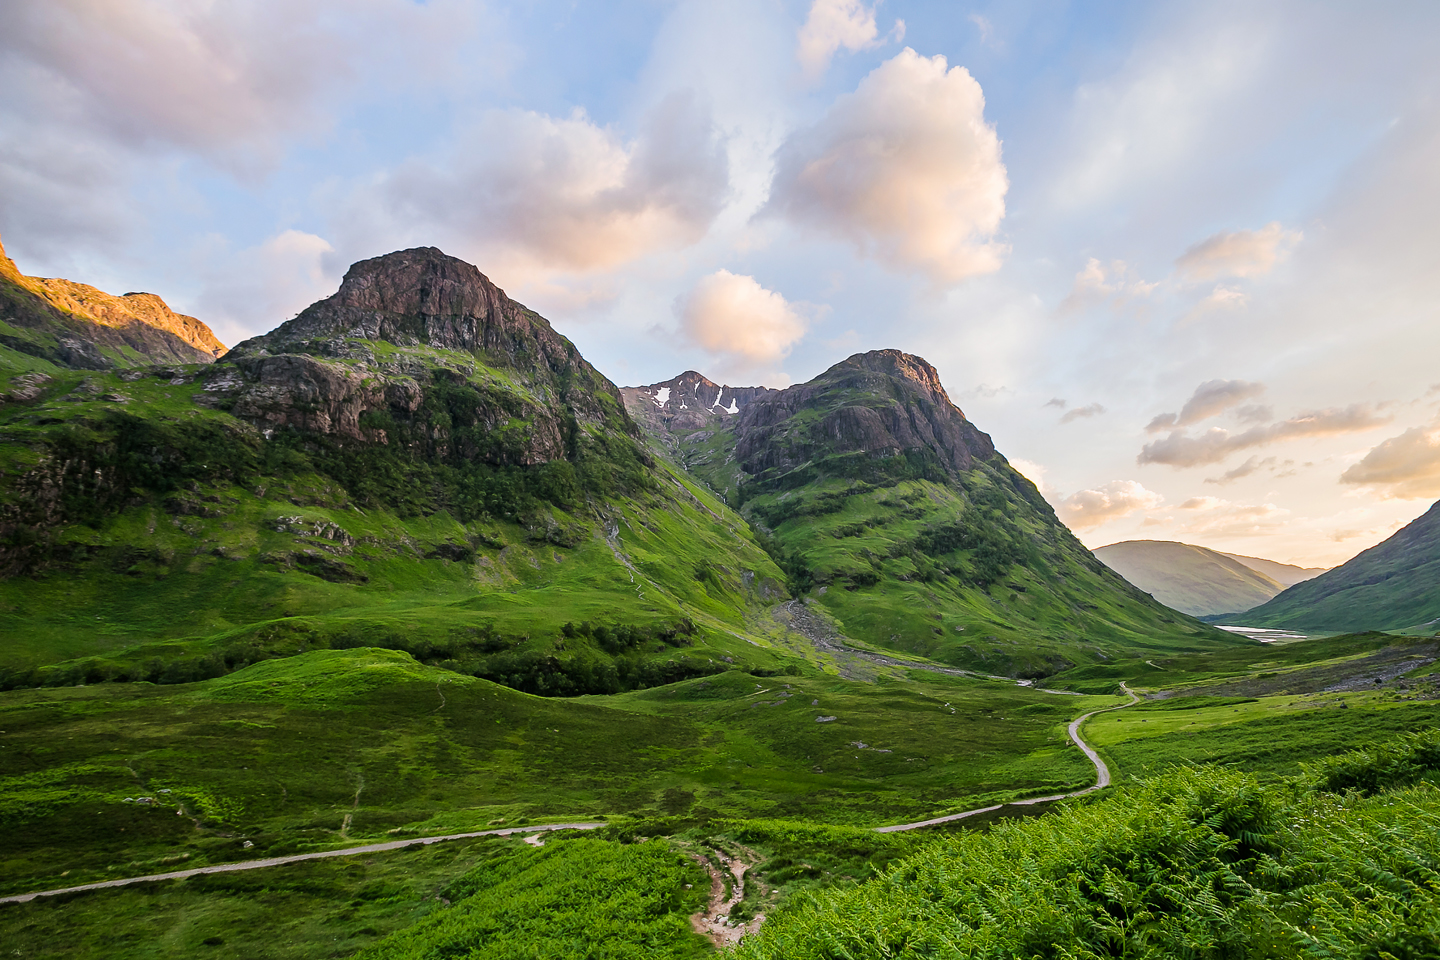 Harry-potter-Glencoe-Scotland-Julie-Boyd-Photo.jpg